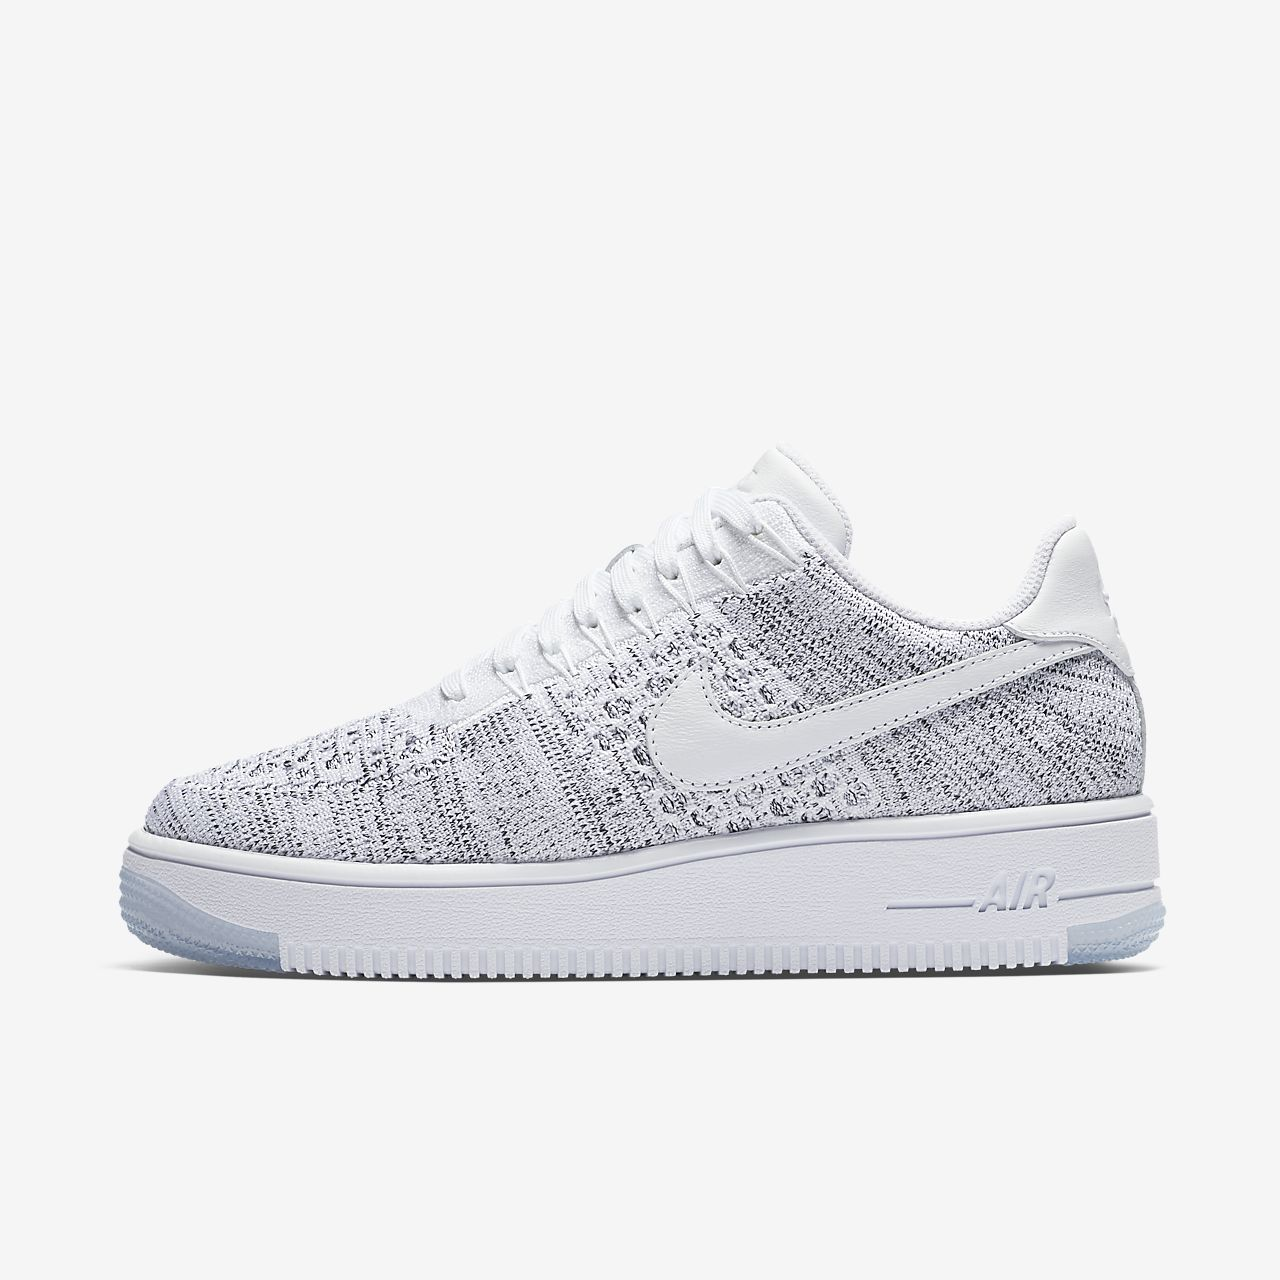 air force one nike flyknit